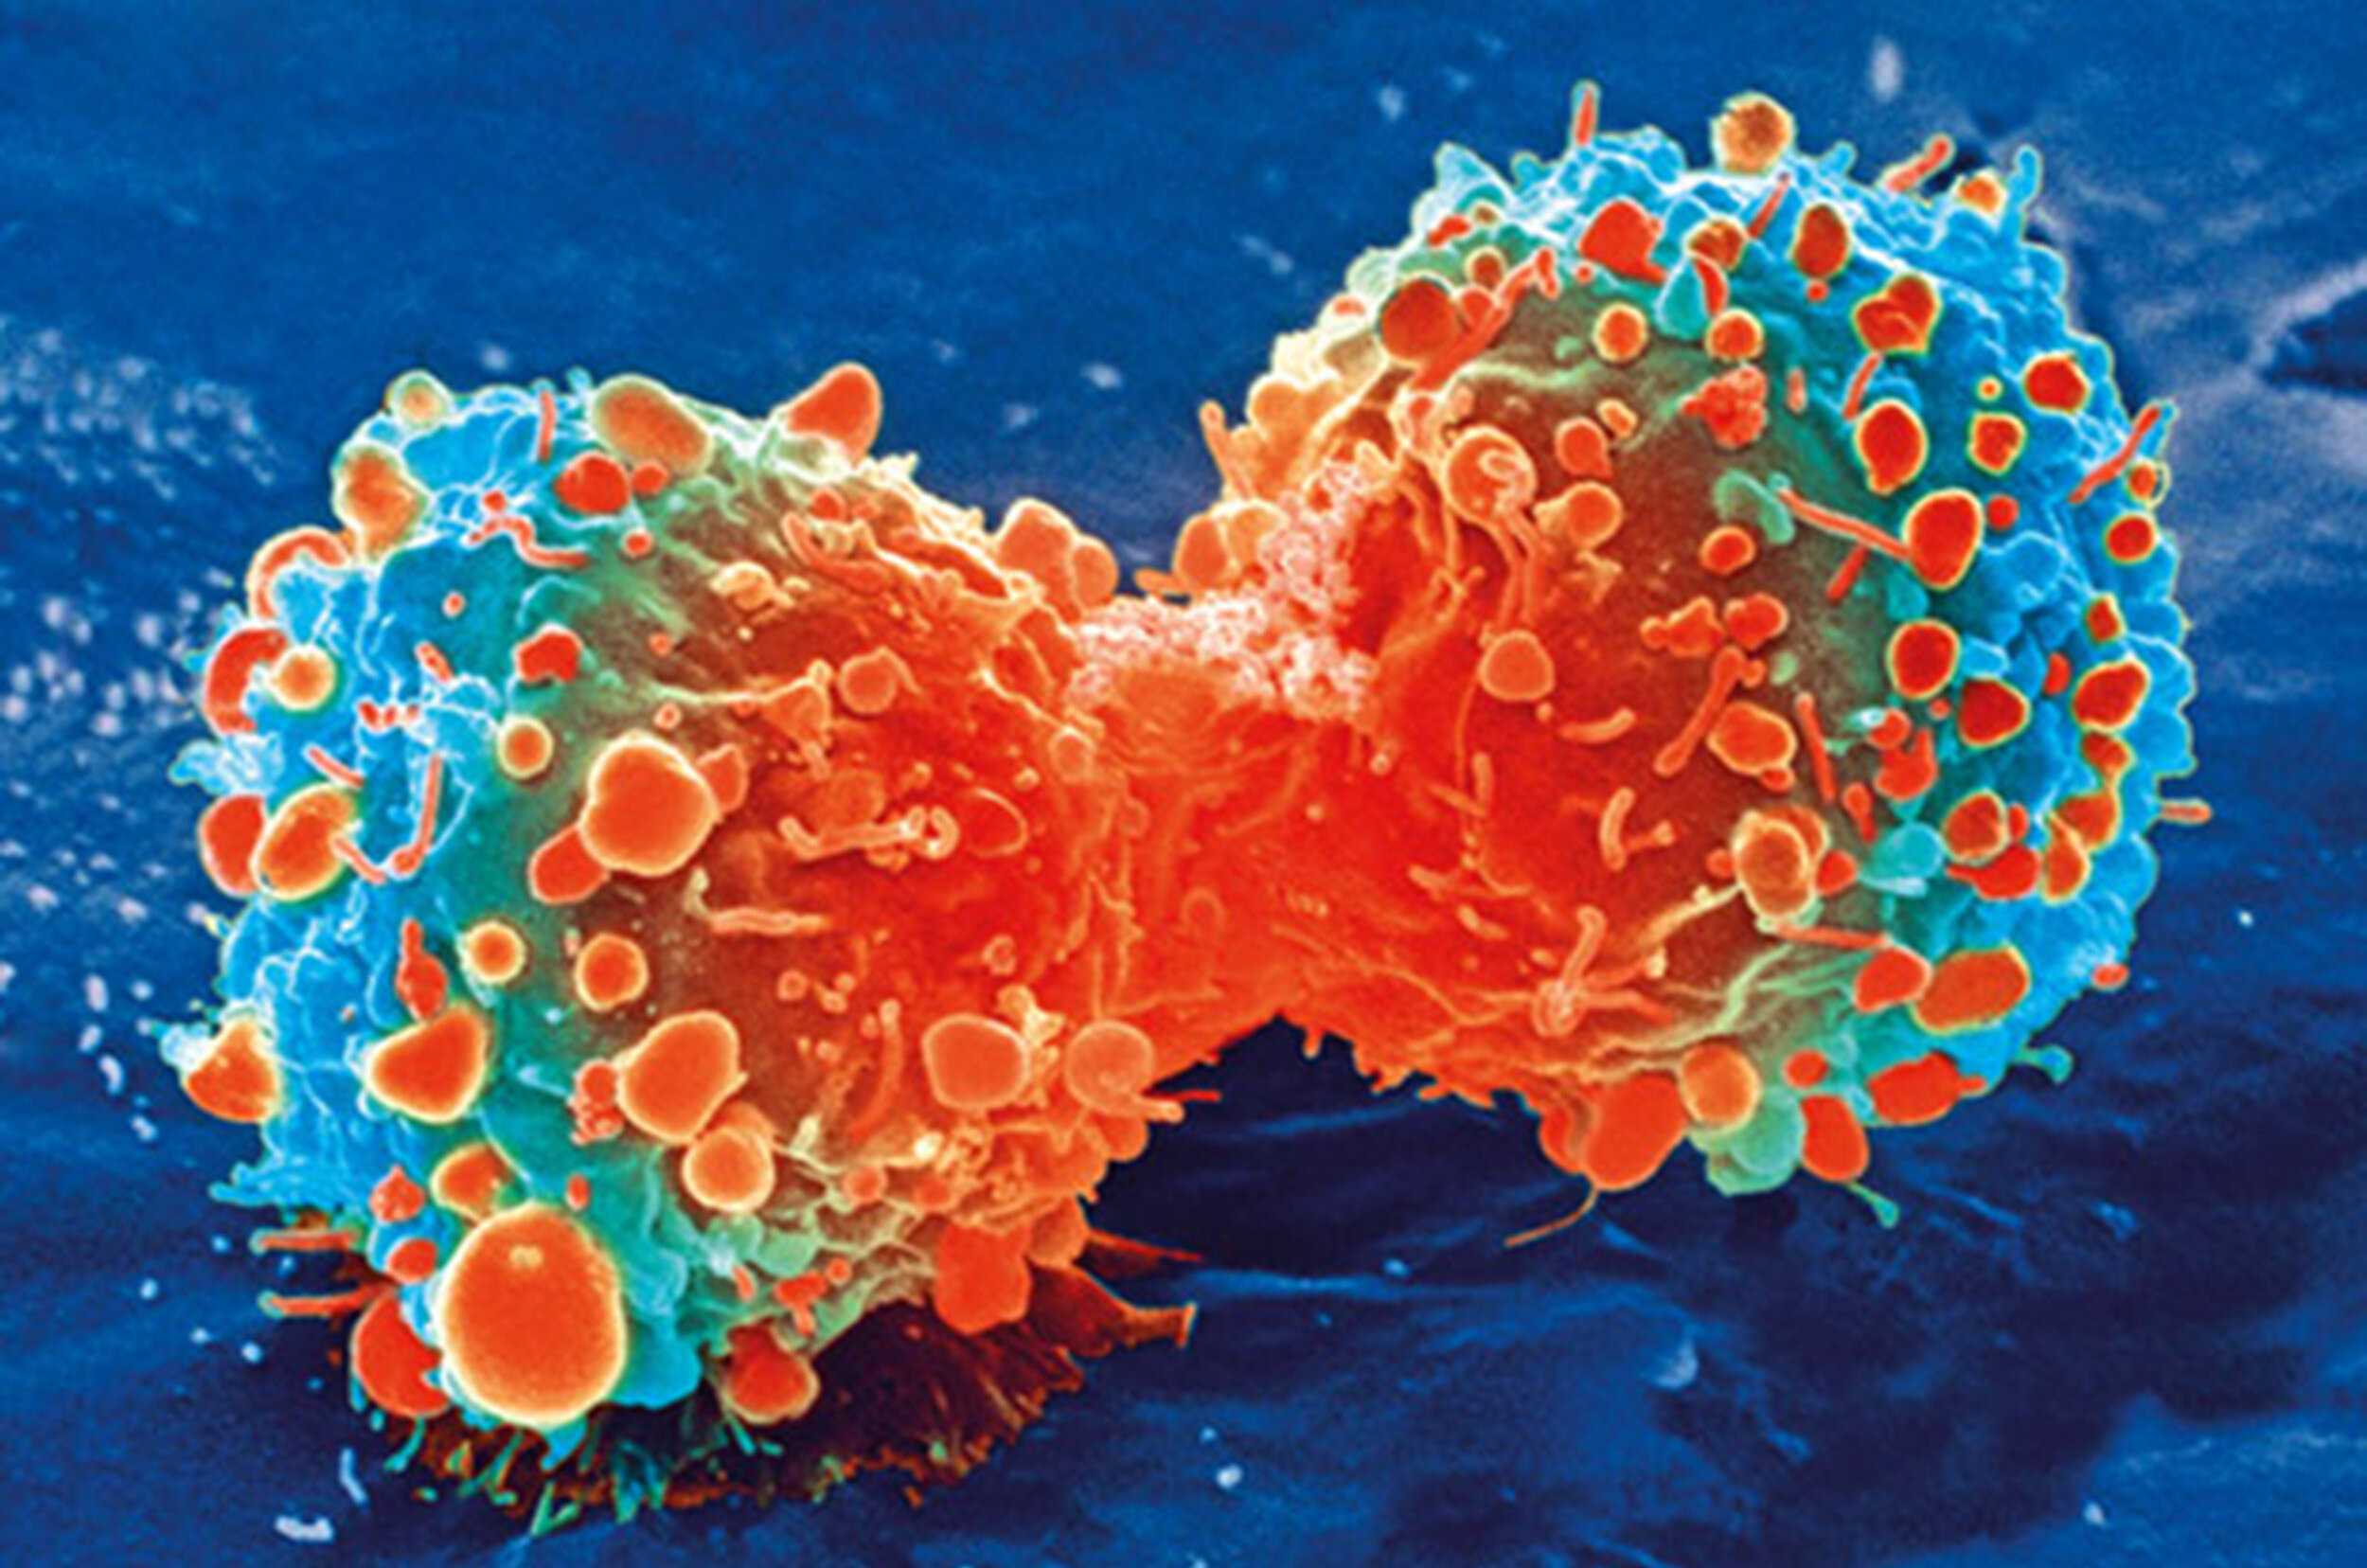 Why haven't cancer cells undergone genetic meltdowns?